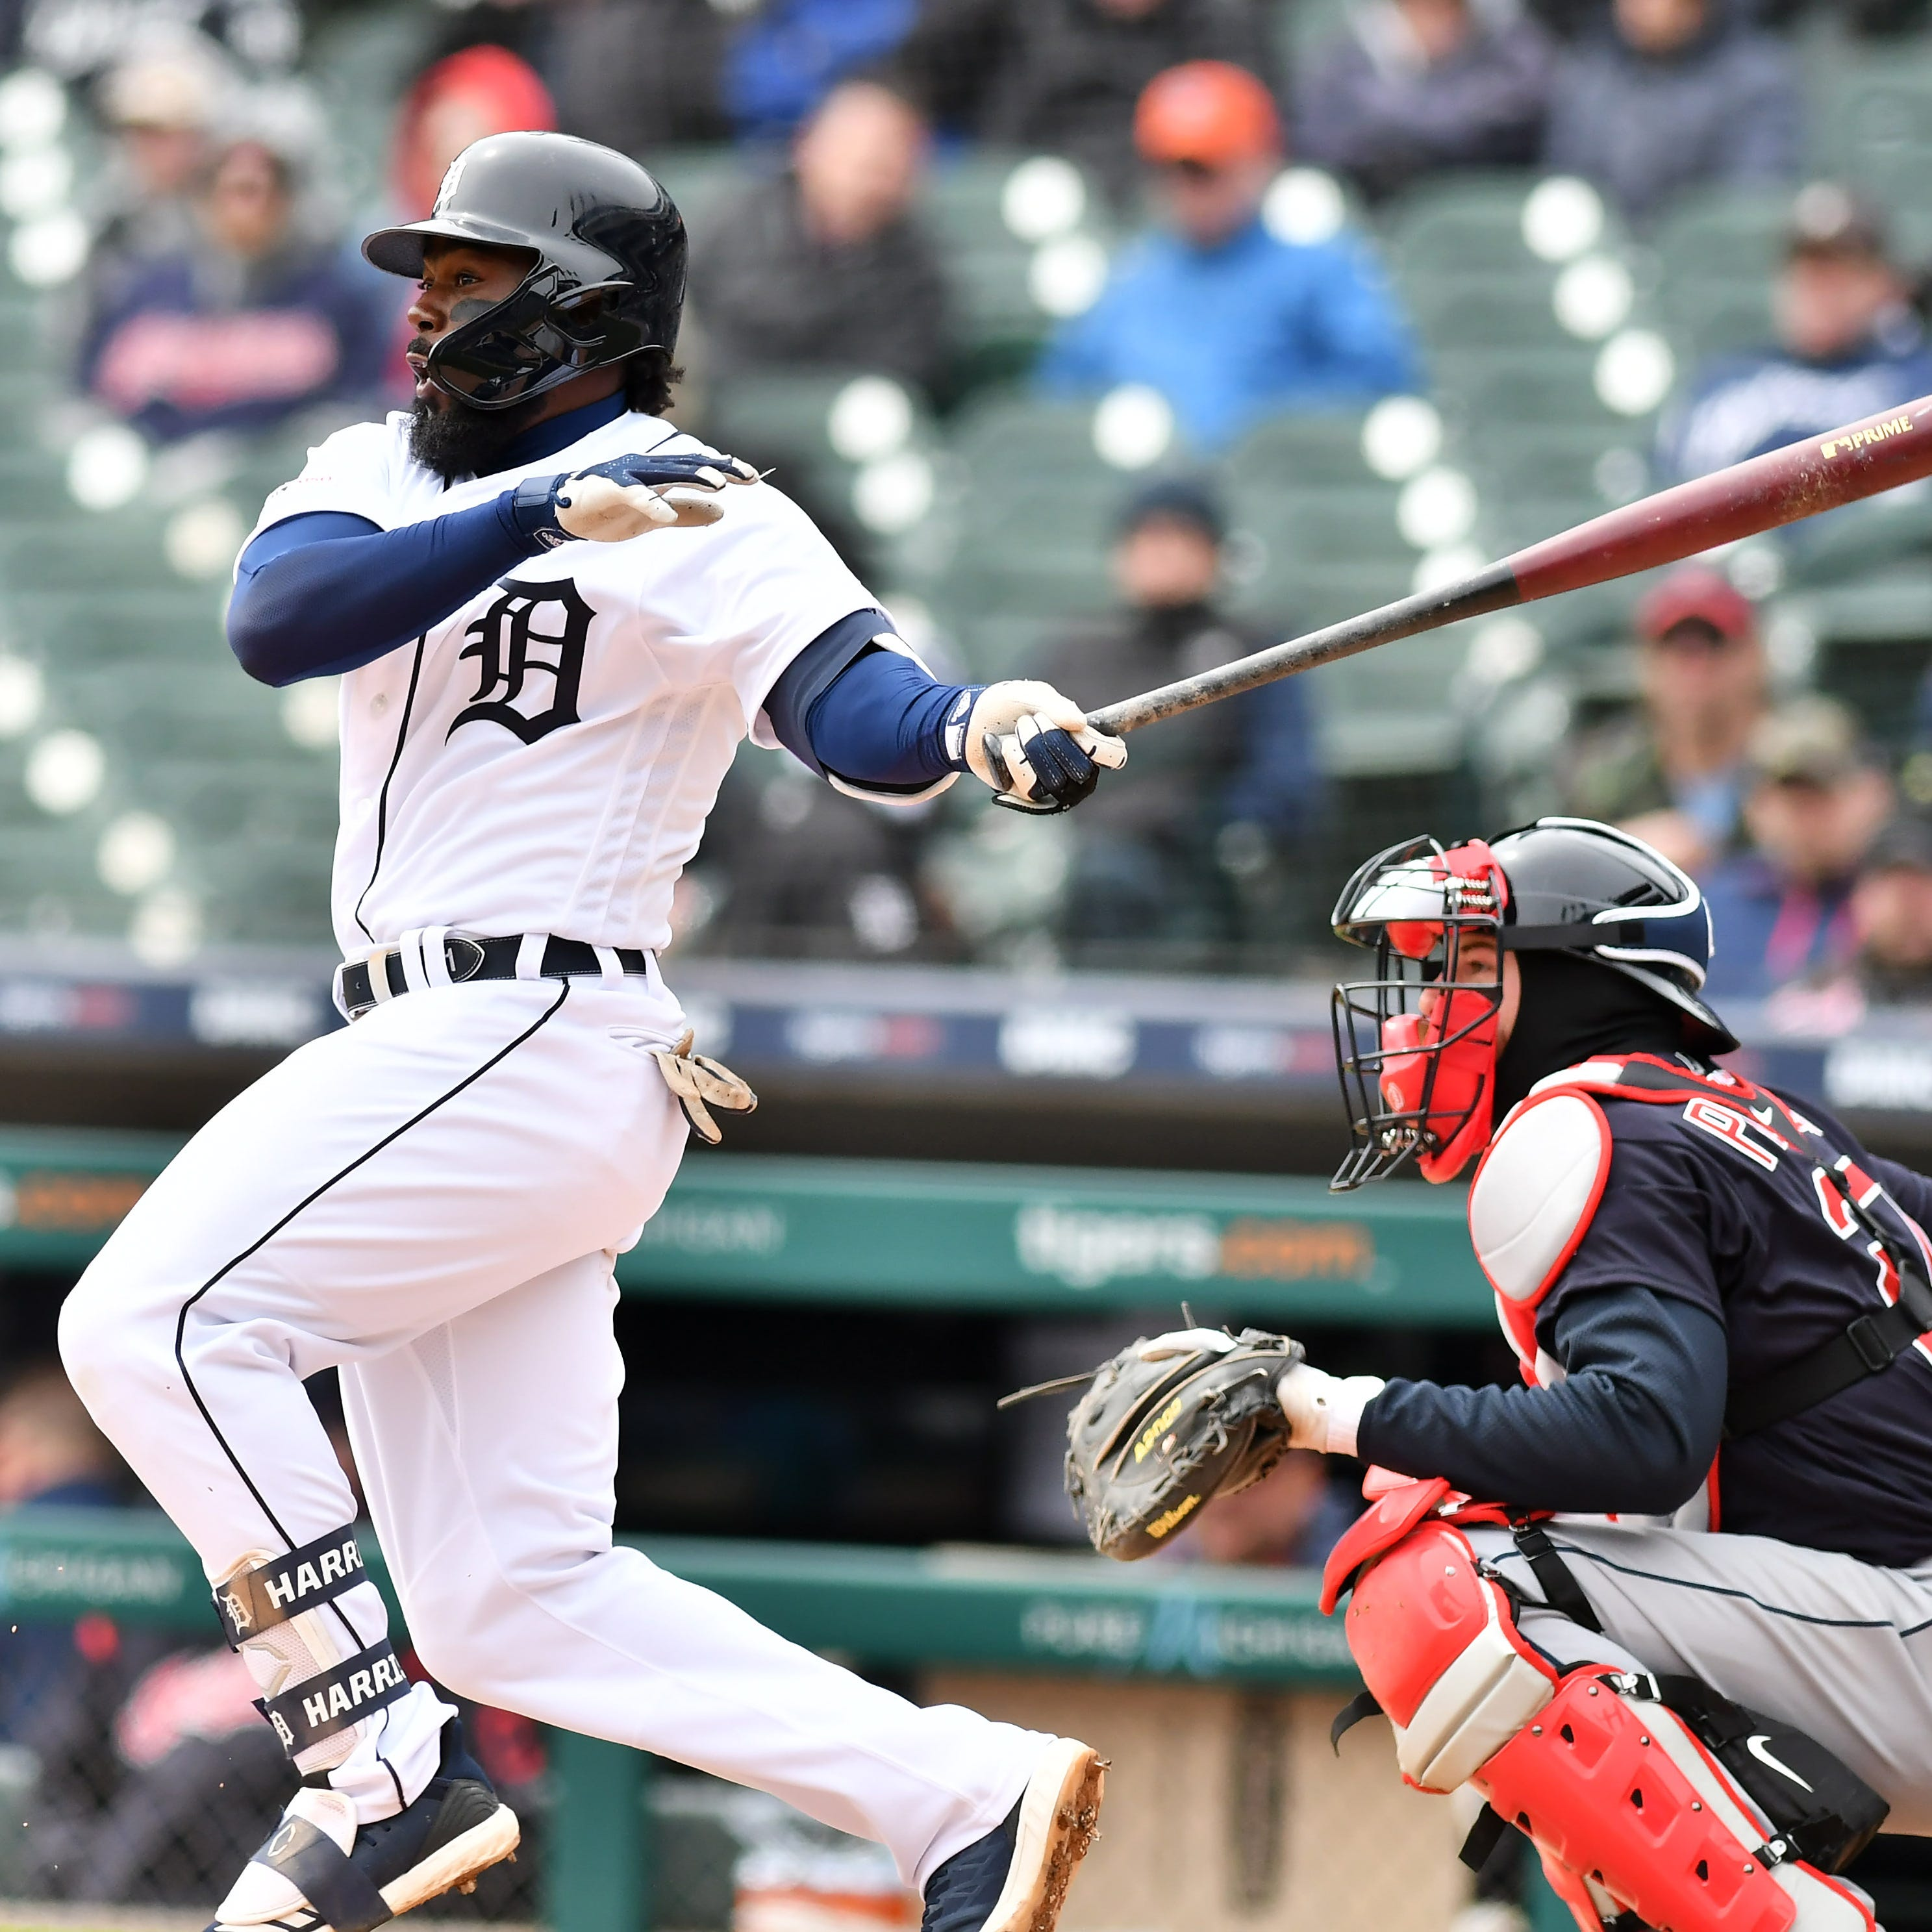 Moving Josh Harrison out of lead-off spot problematic for Tigers